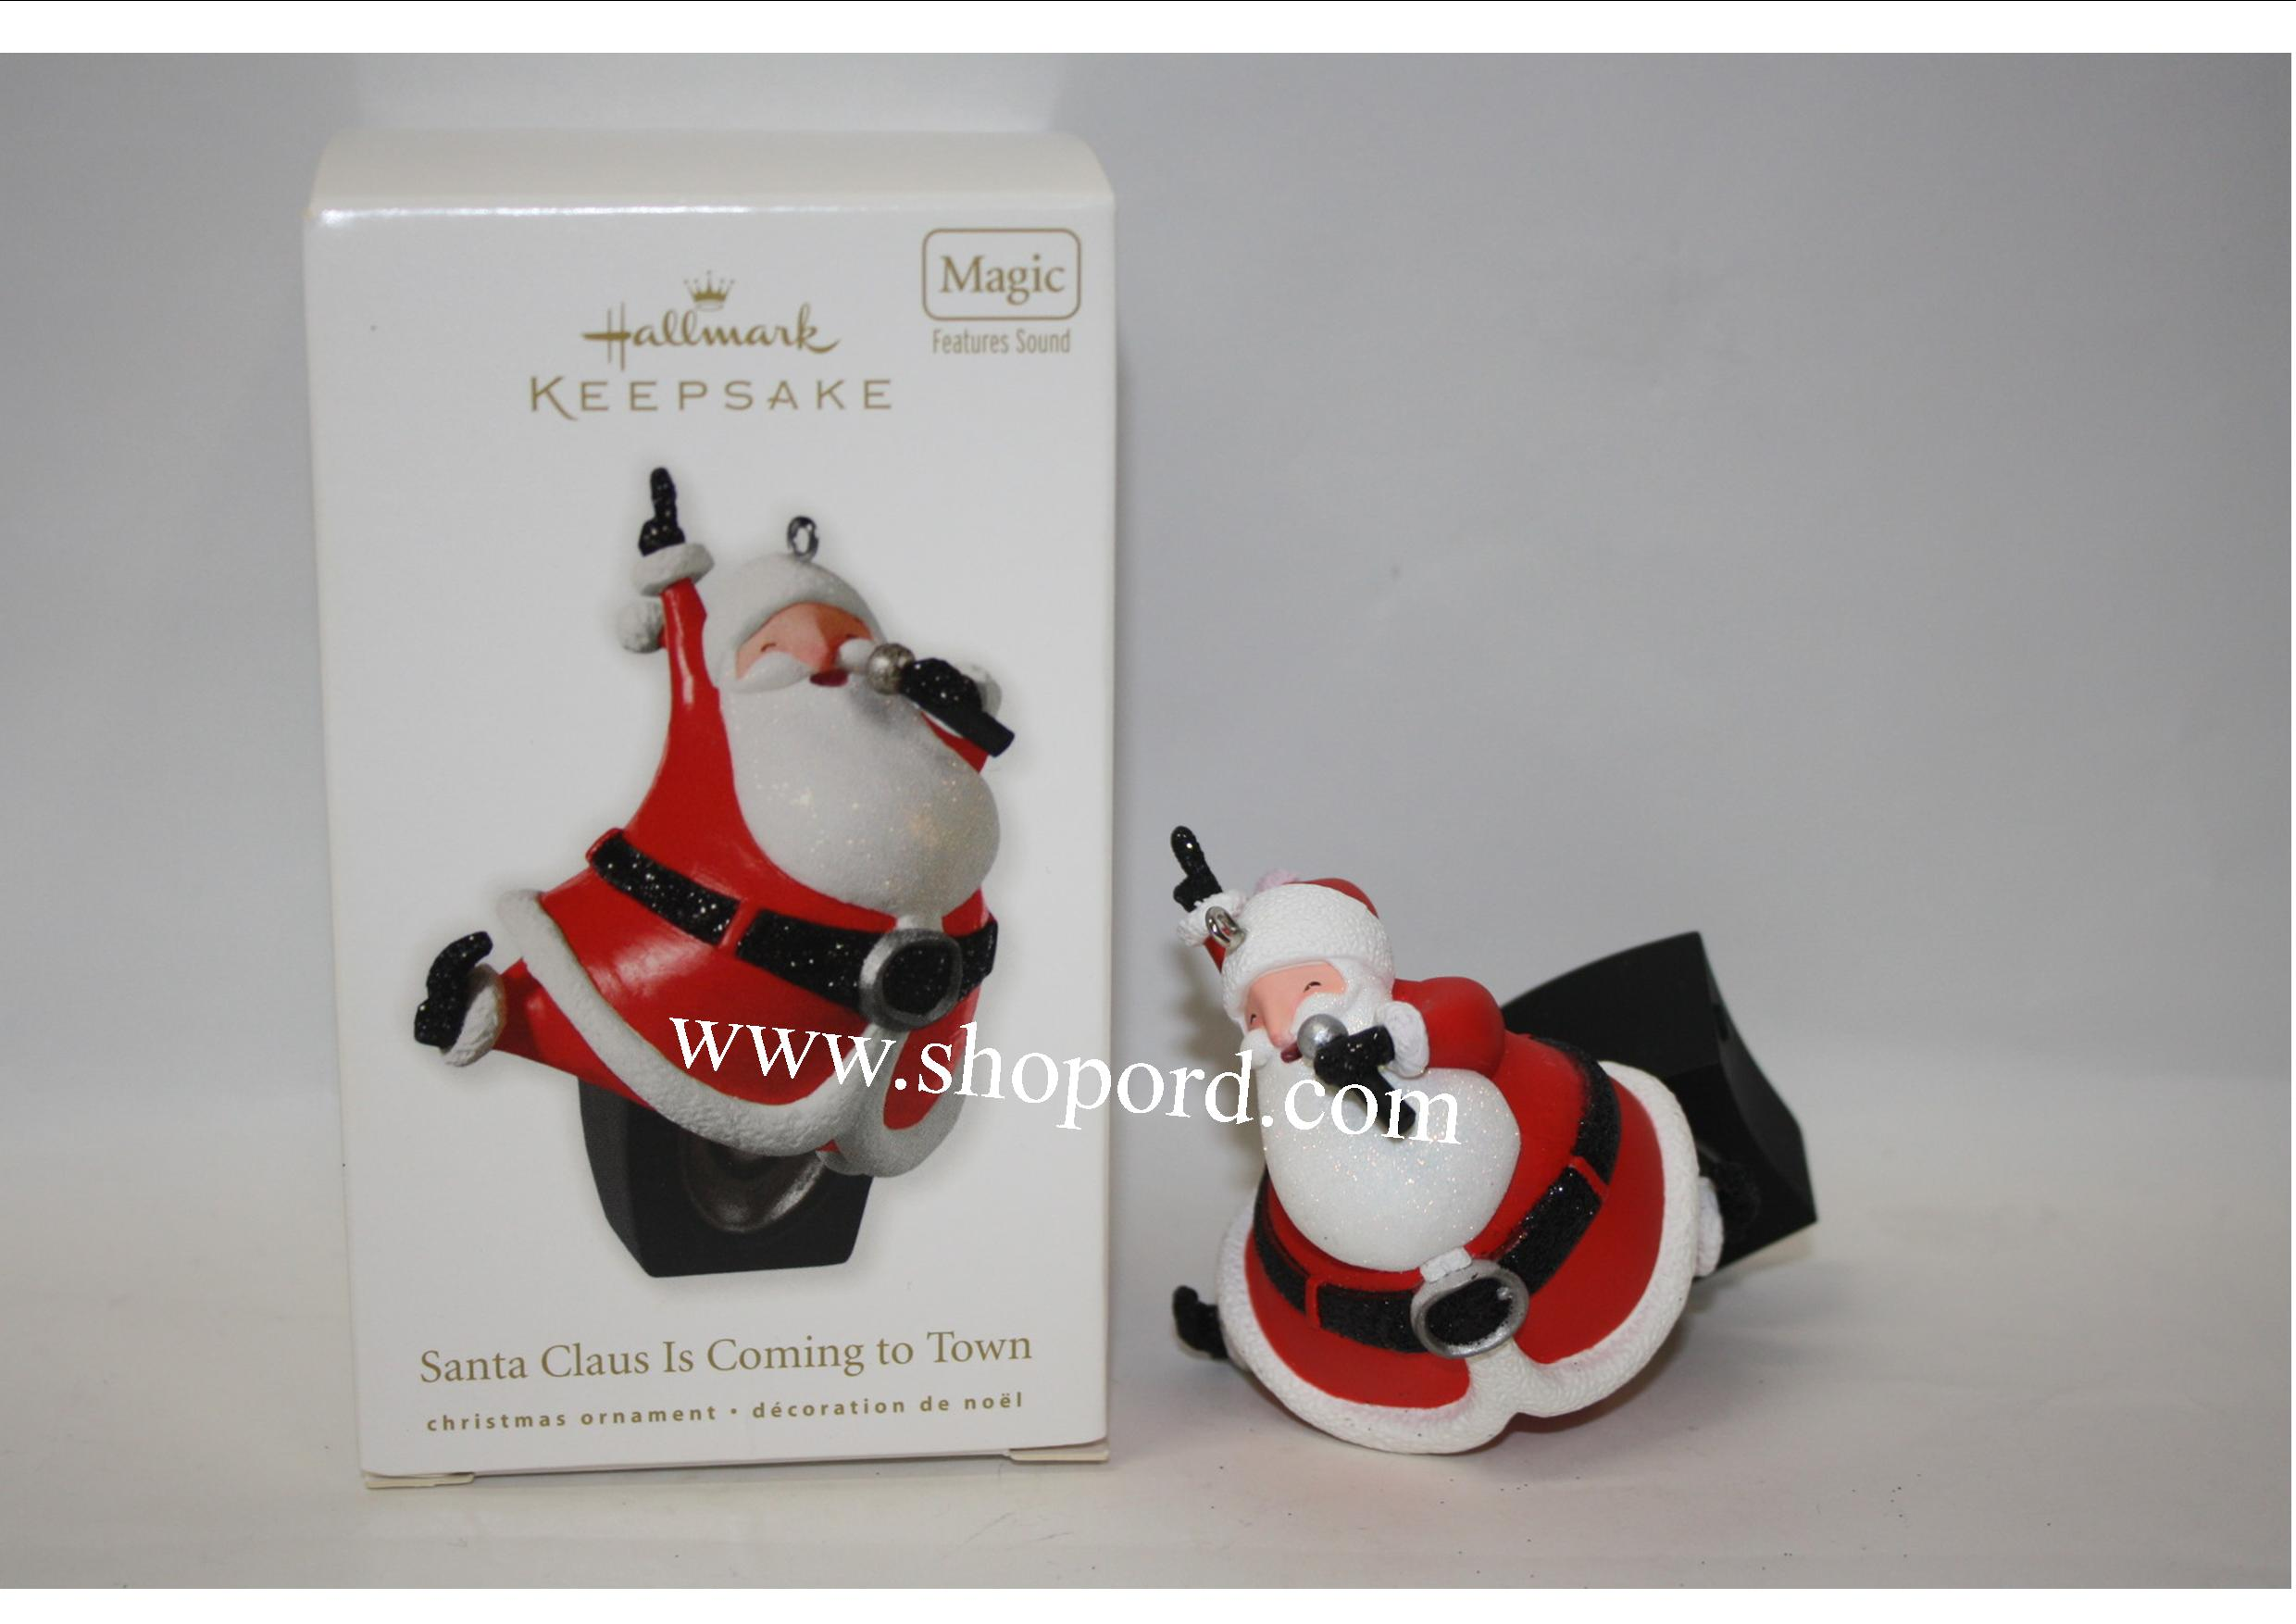 Hallmark 2010 Santa Claus Is Coming to Town Ornament QXG3056